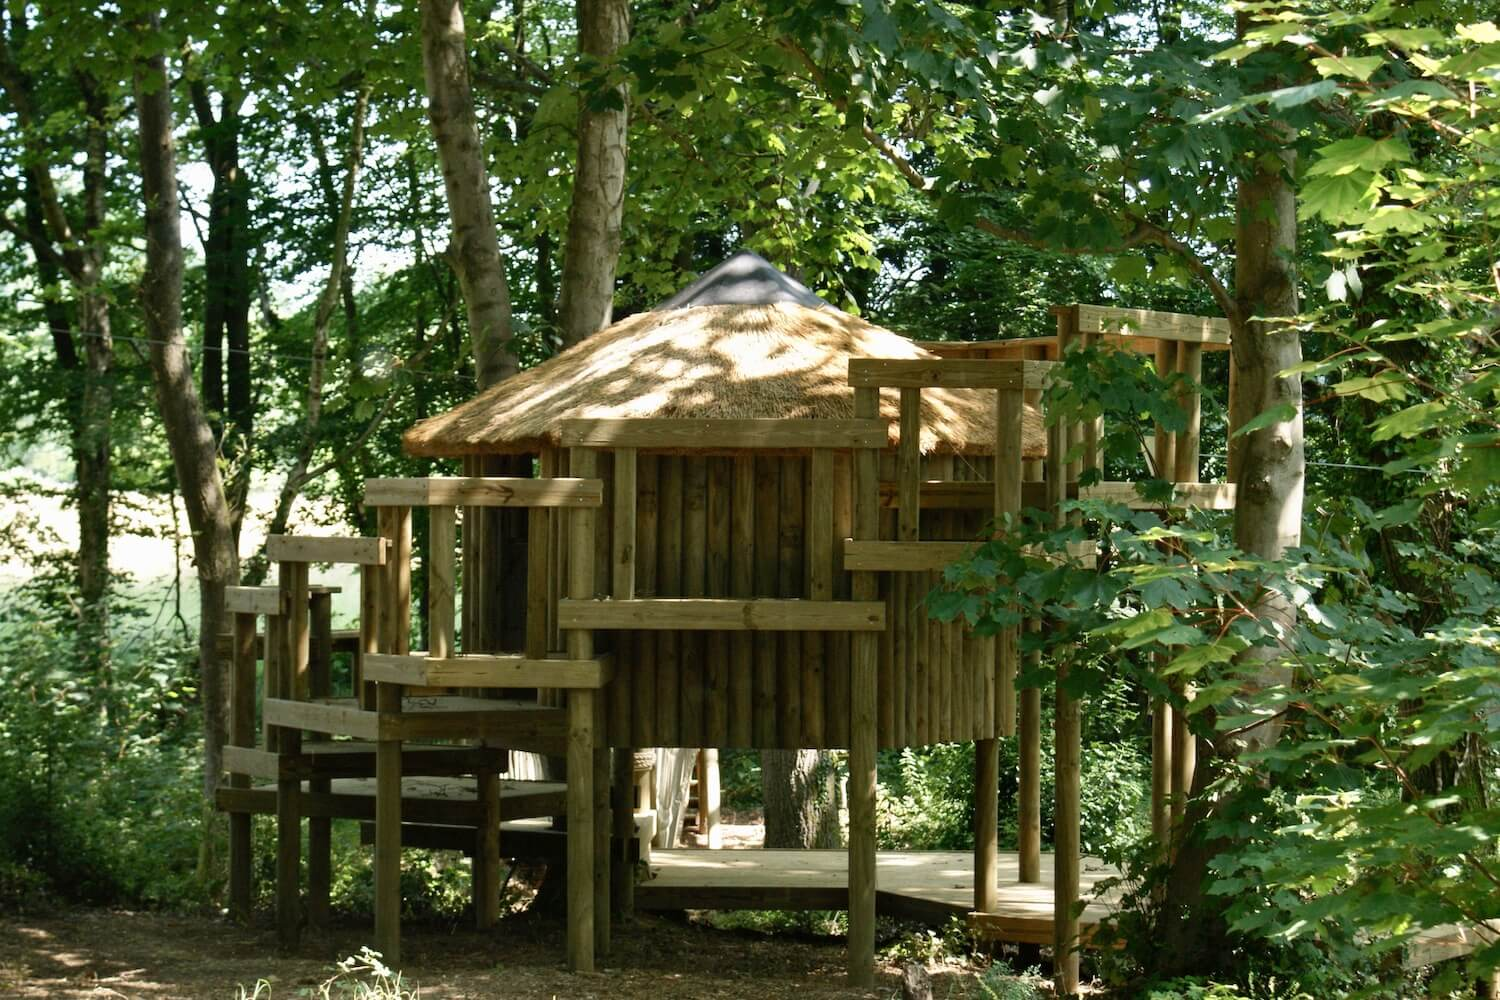 'Self-build' tree house